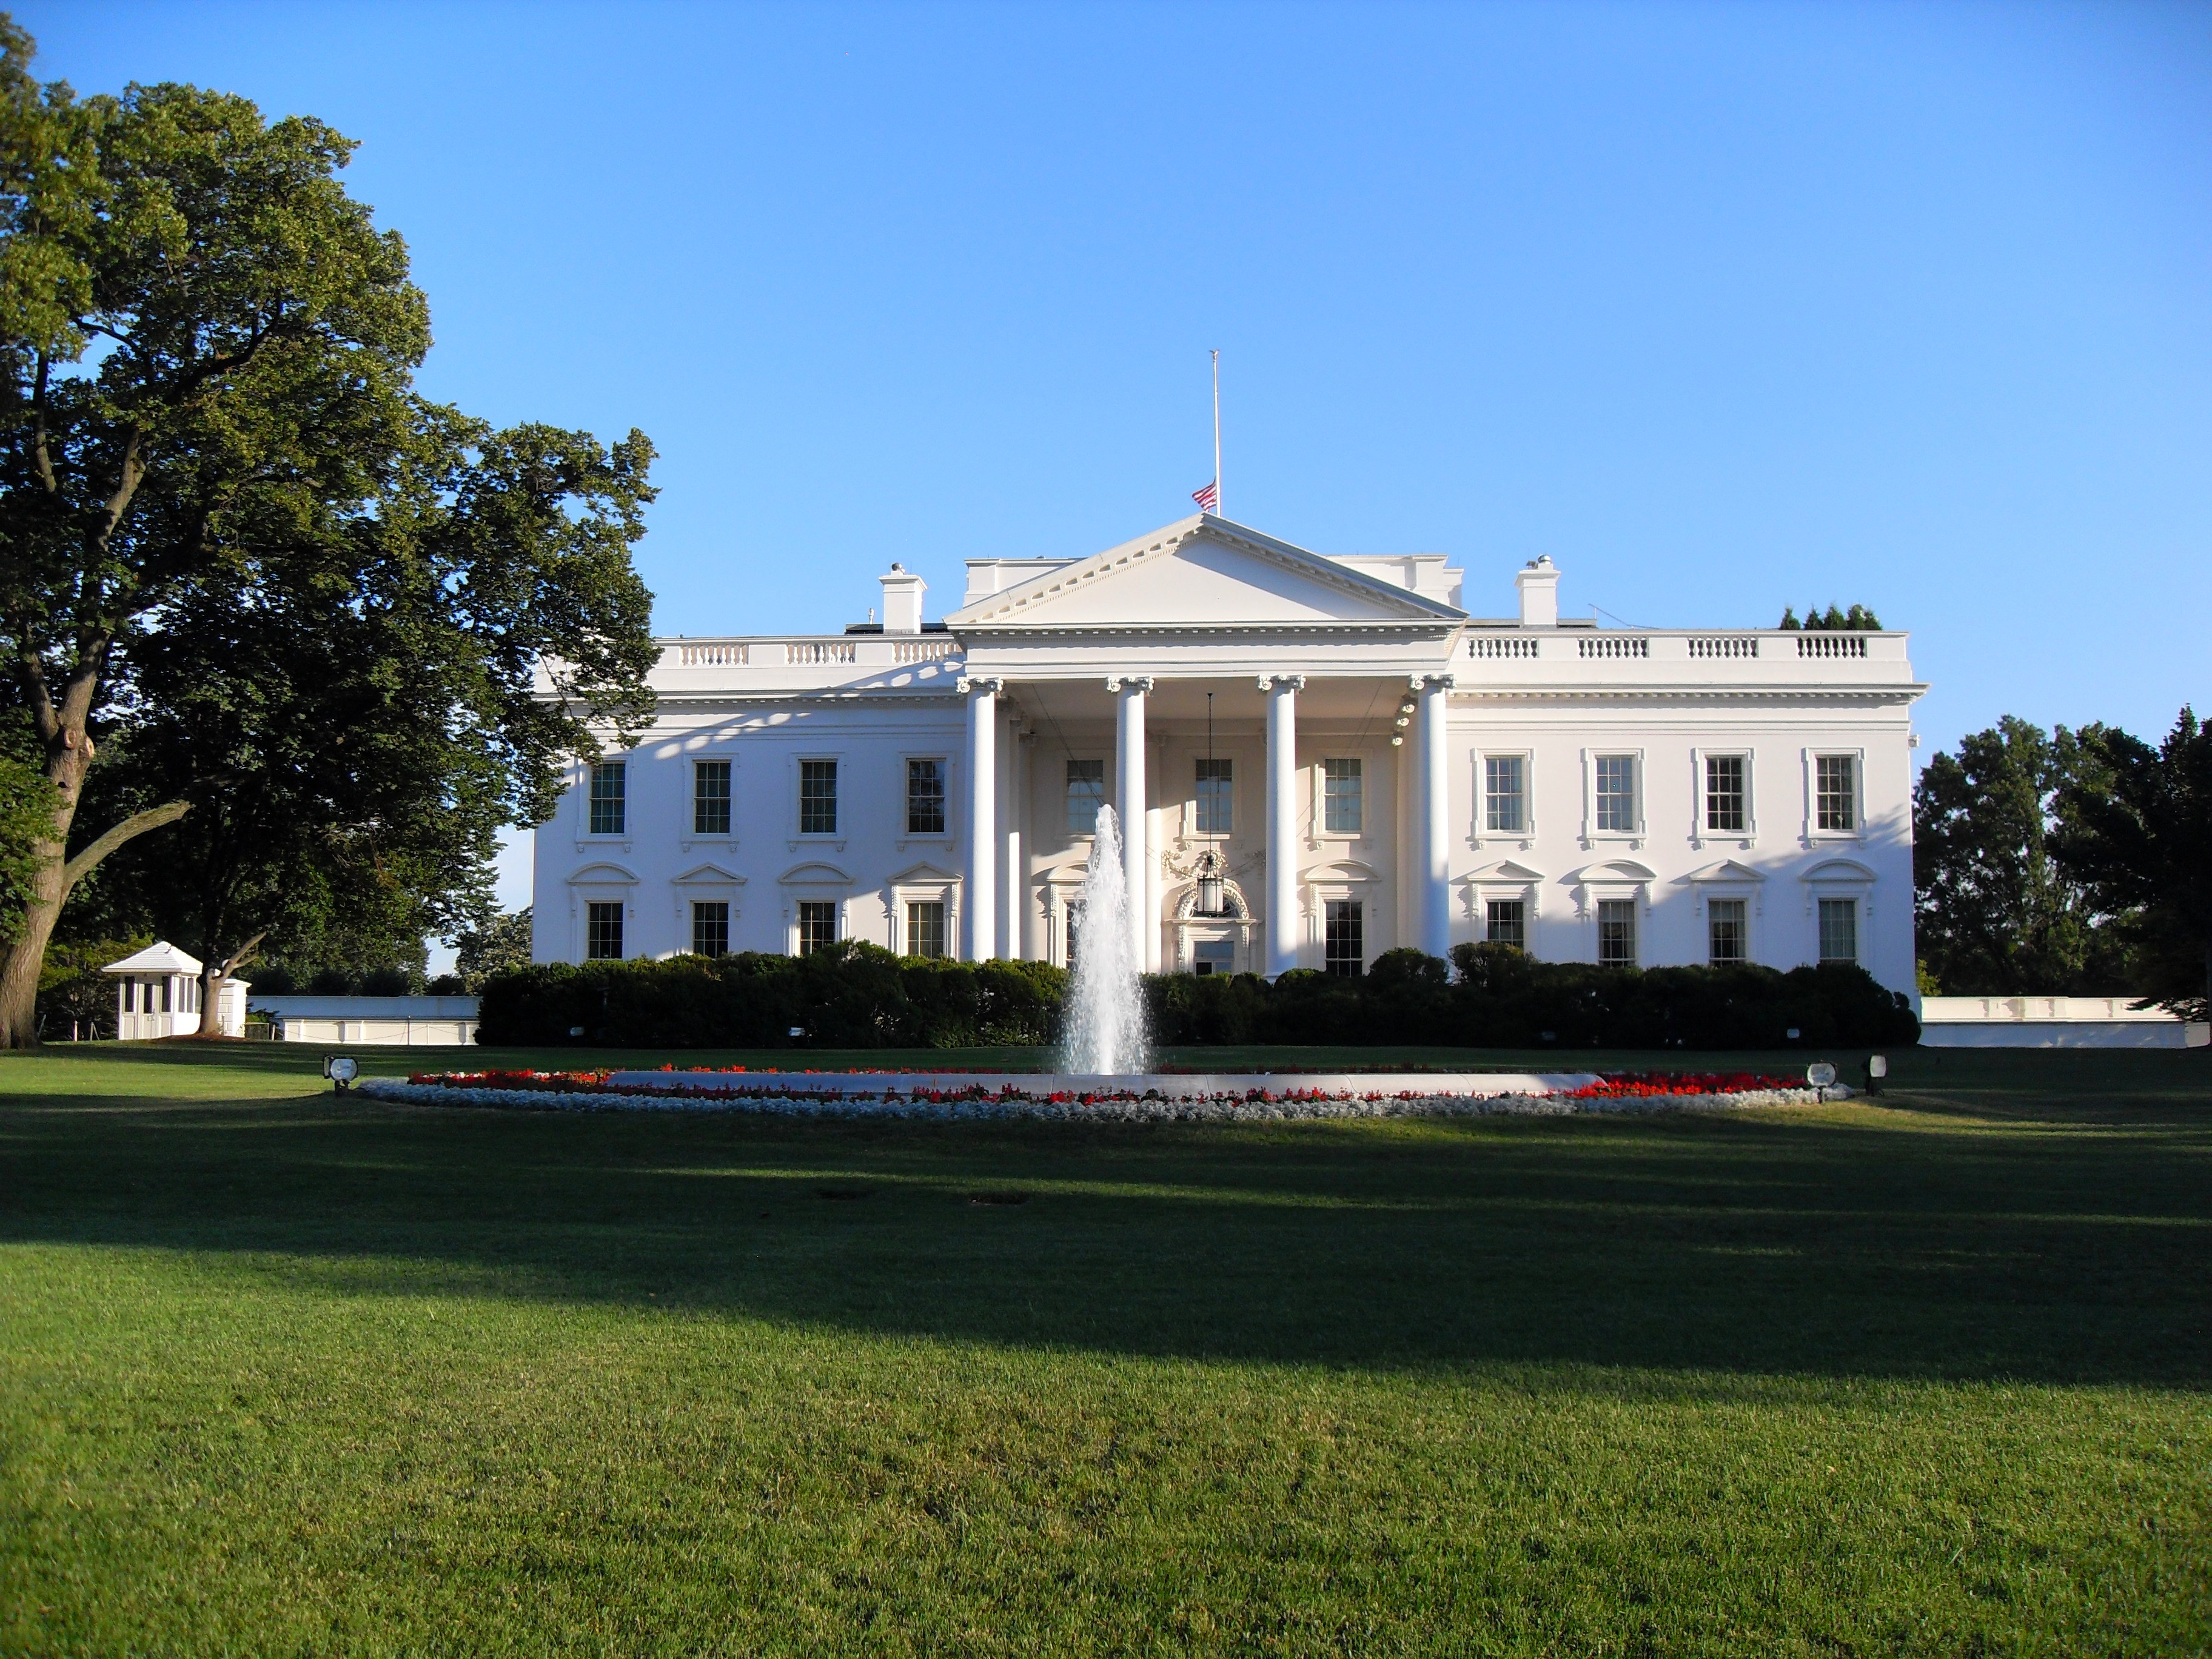 Pictures of the new white house Foreign Policy - The White House